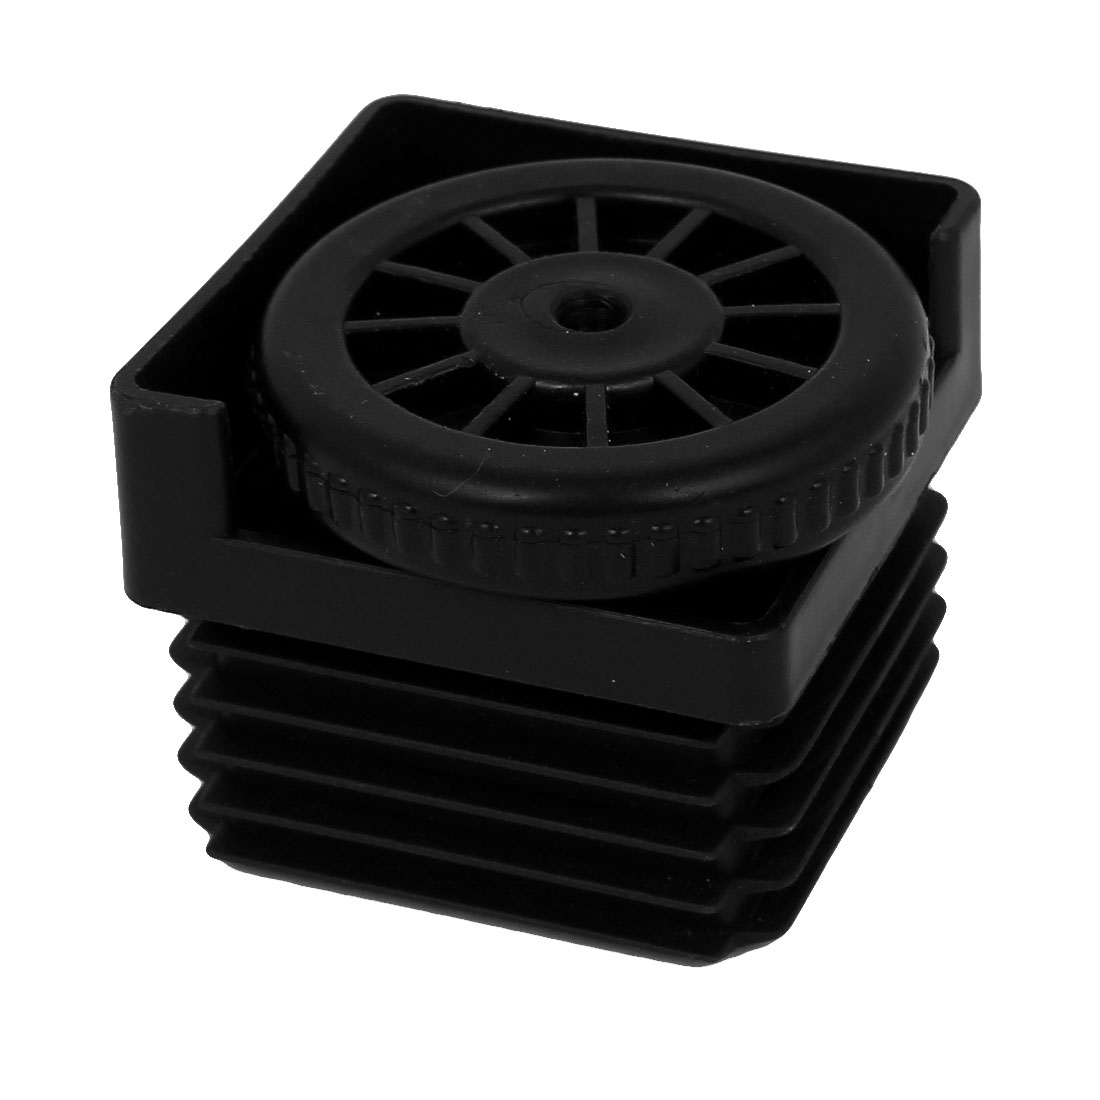 8mm Thread Dia. 50mm Base Adjustable Plastic Square Foot Pad for Furniture Black